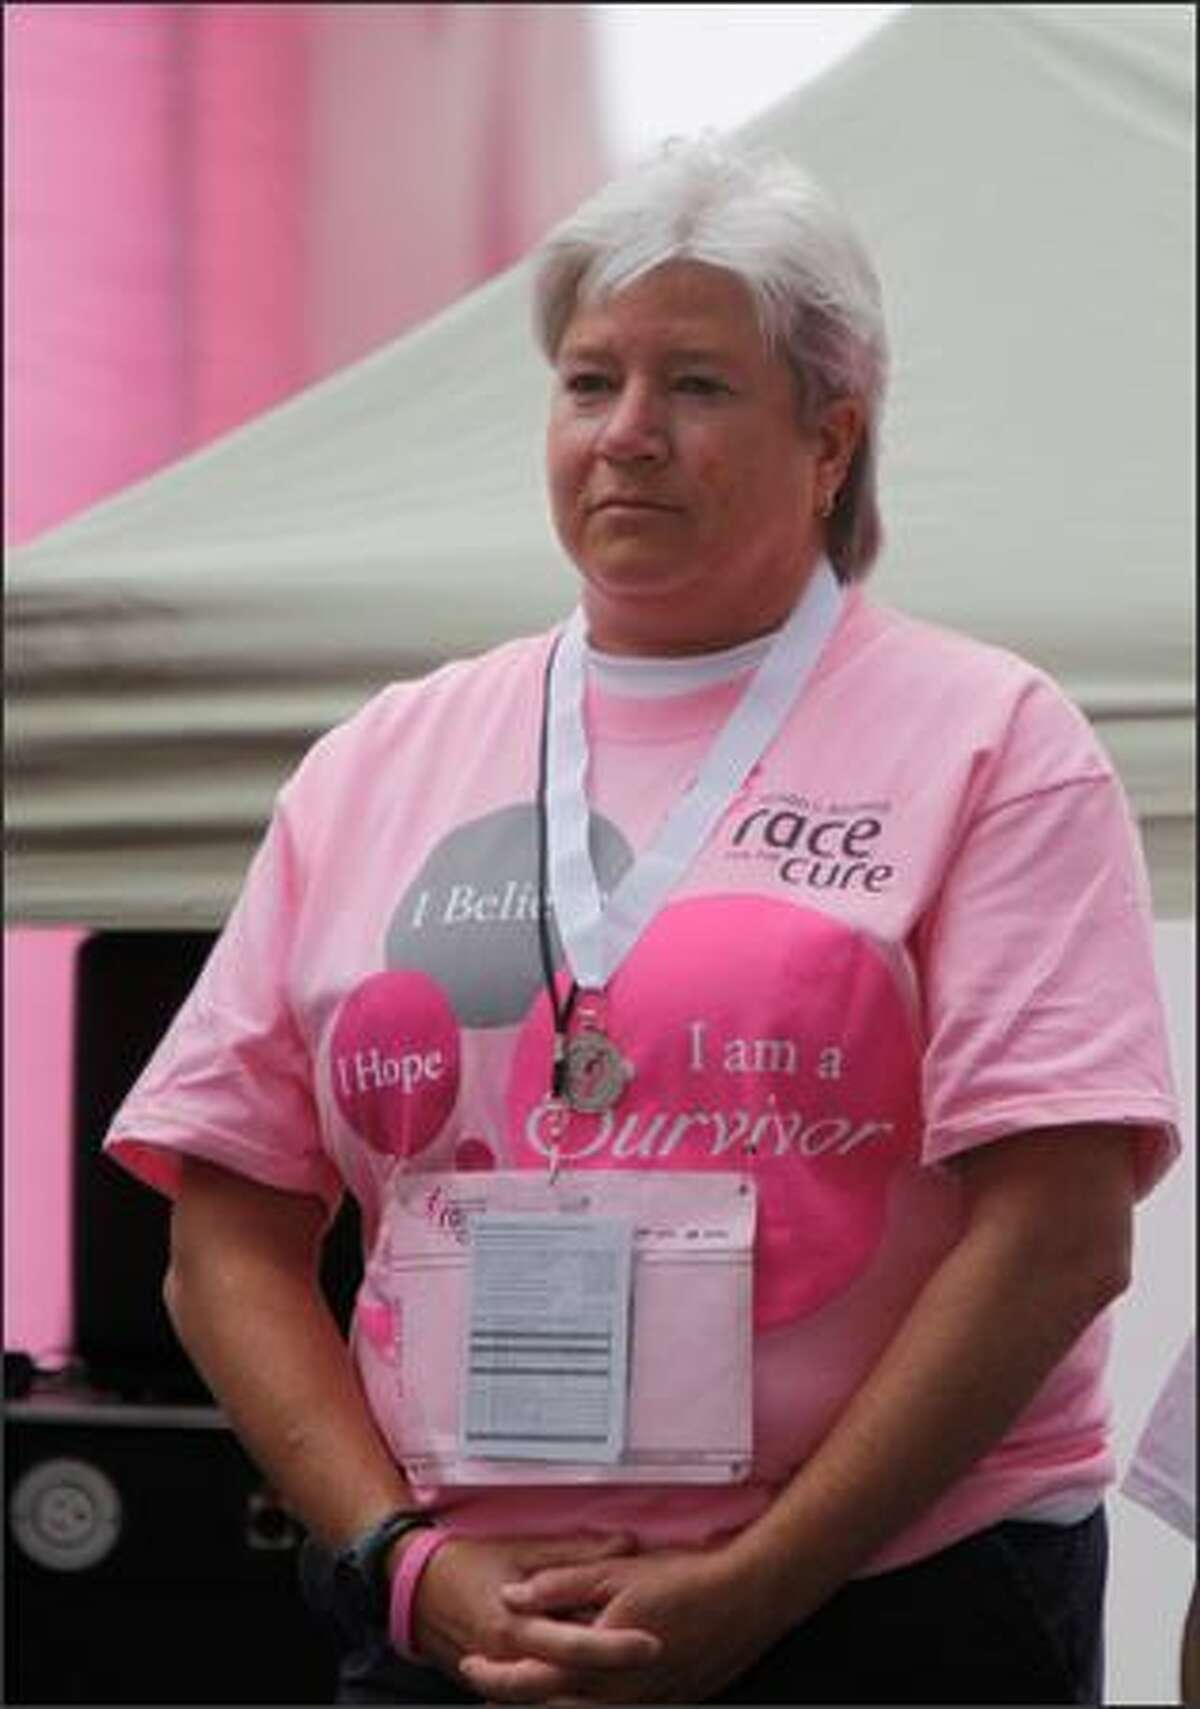 Seattle Police Lt. Robin Clark was grand marshal of the 2009 Komen Puget Sound Race for the Cure at Qwest Field in Seattle, Sunday.